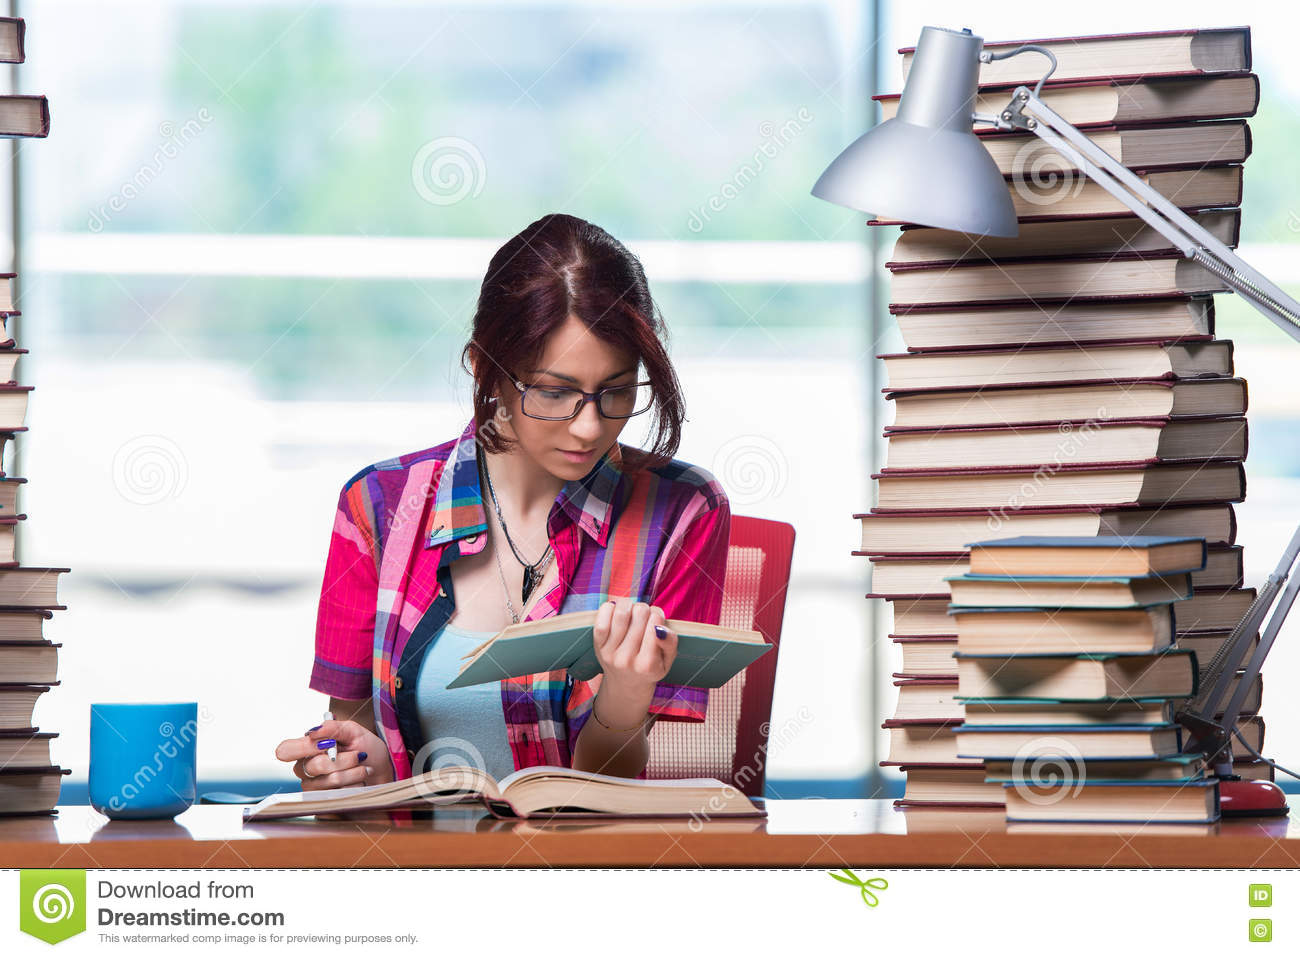 The young female student preparing for exams